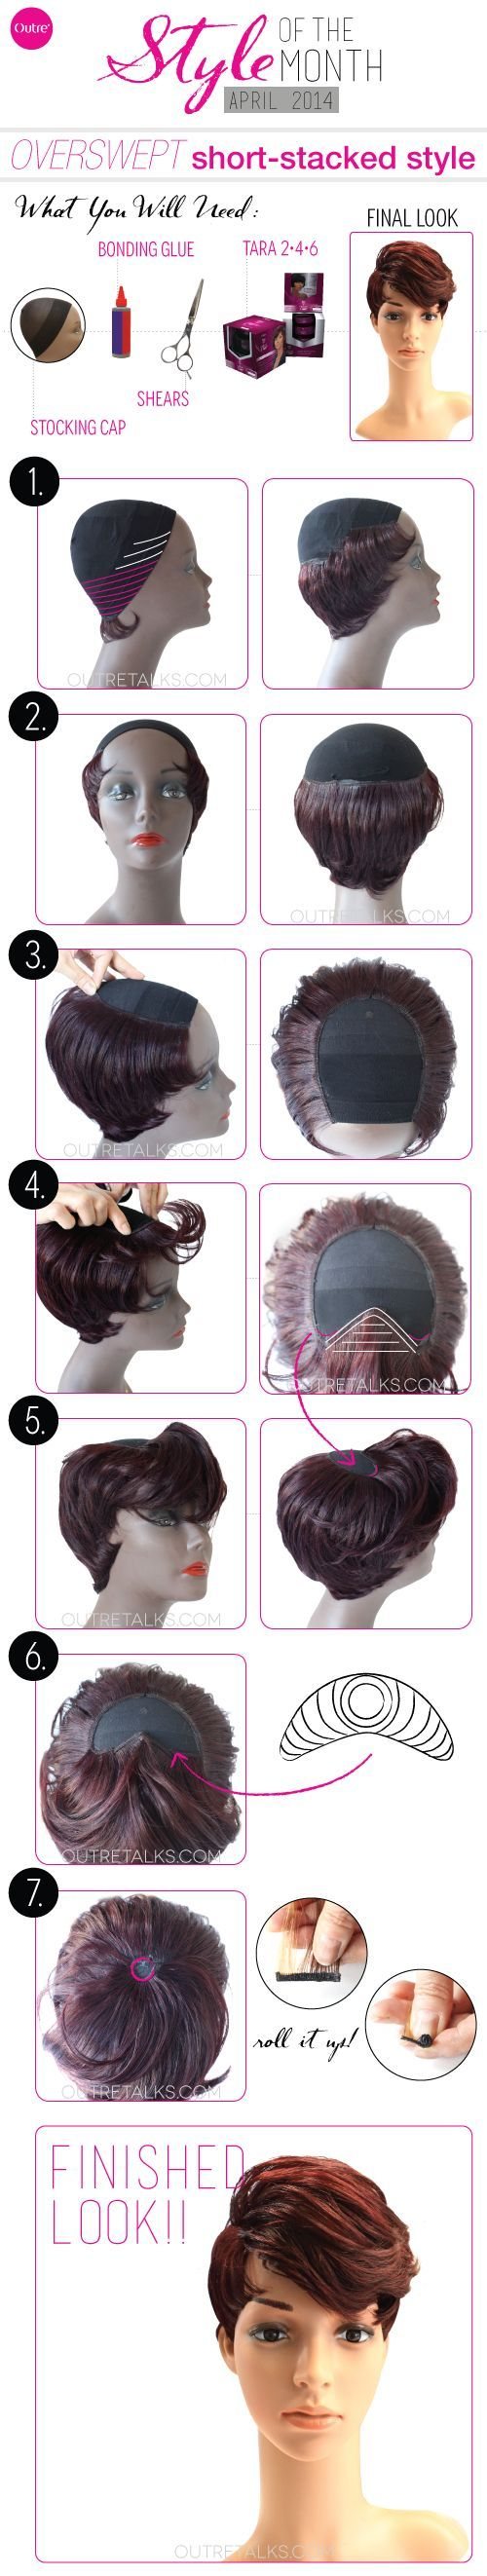 How to create a unique short style stocking cap weave with Velvet Tara Burgundy color   vinuss hair wholesale is going on Order on Website  www.vinuss.com #OMBRECOLOR #OMBREHAIR #LACEWIG